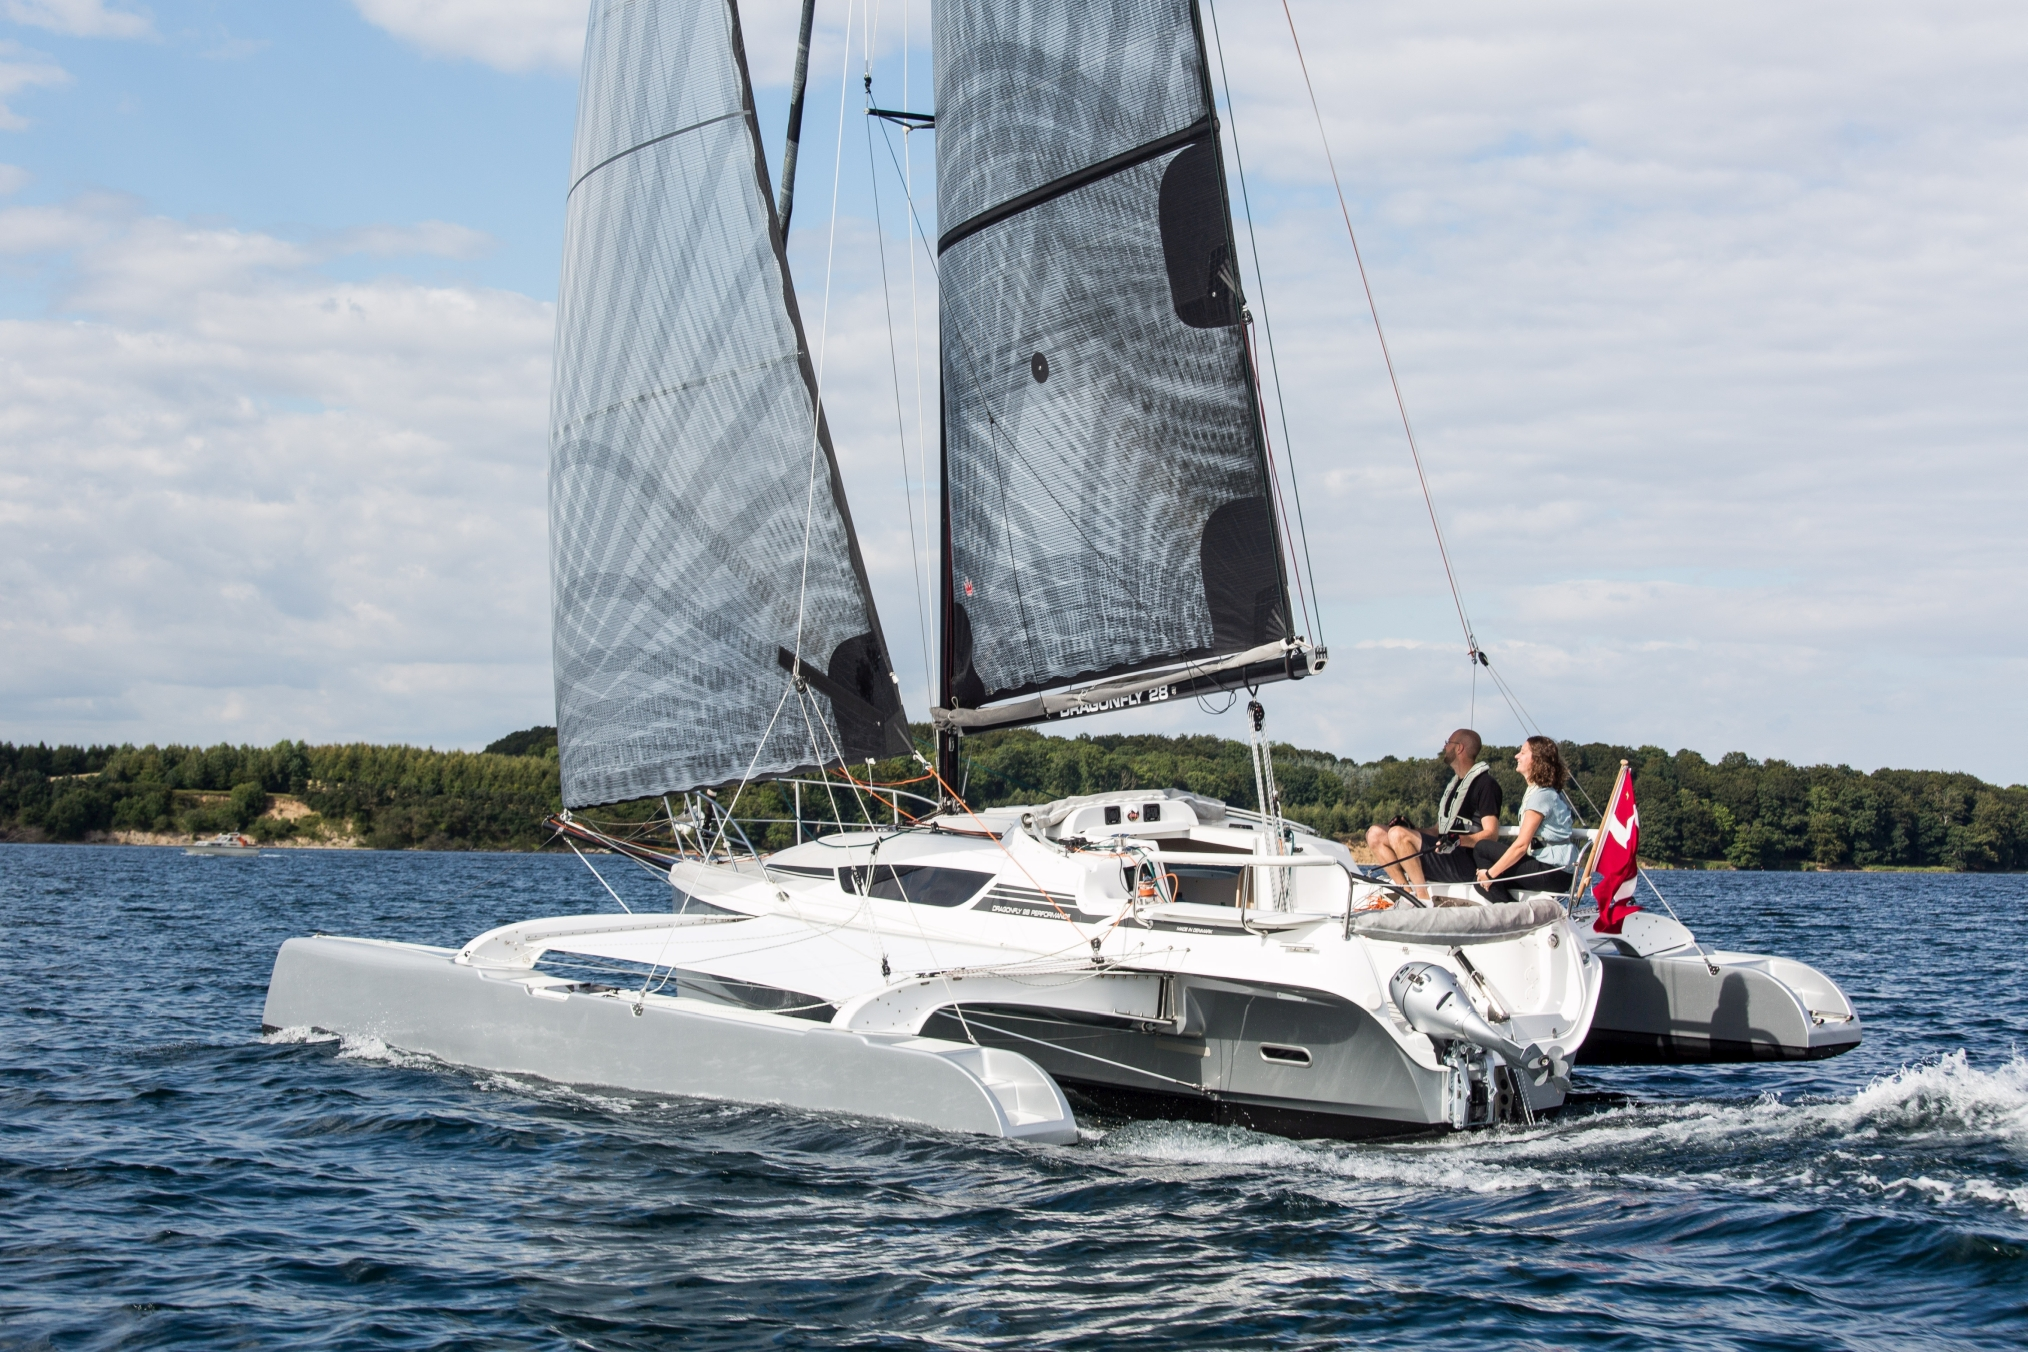 Dragonfly trimarans: Victron equipped by Coromatic A/S